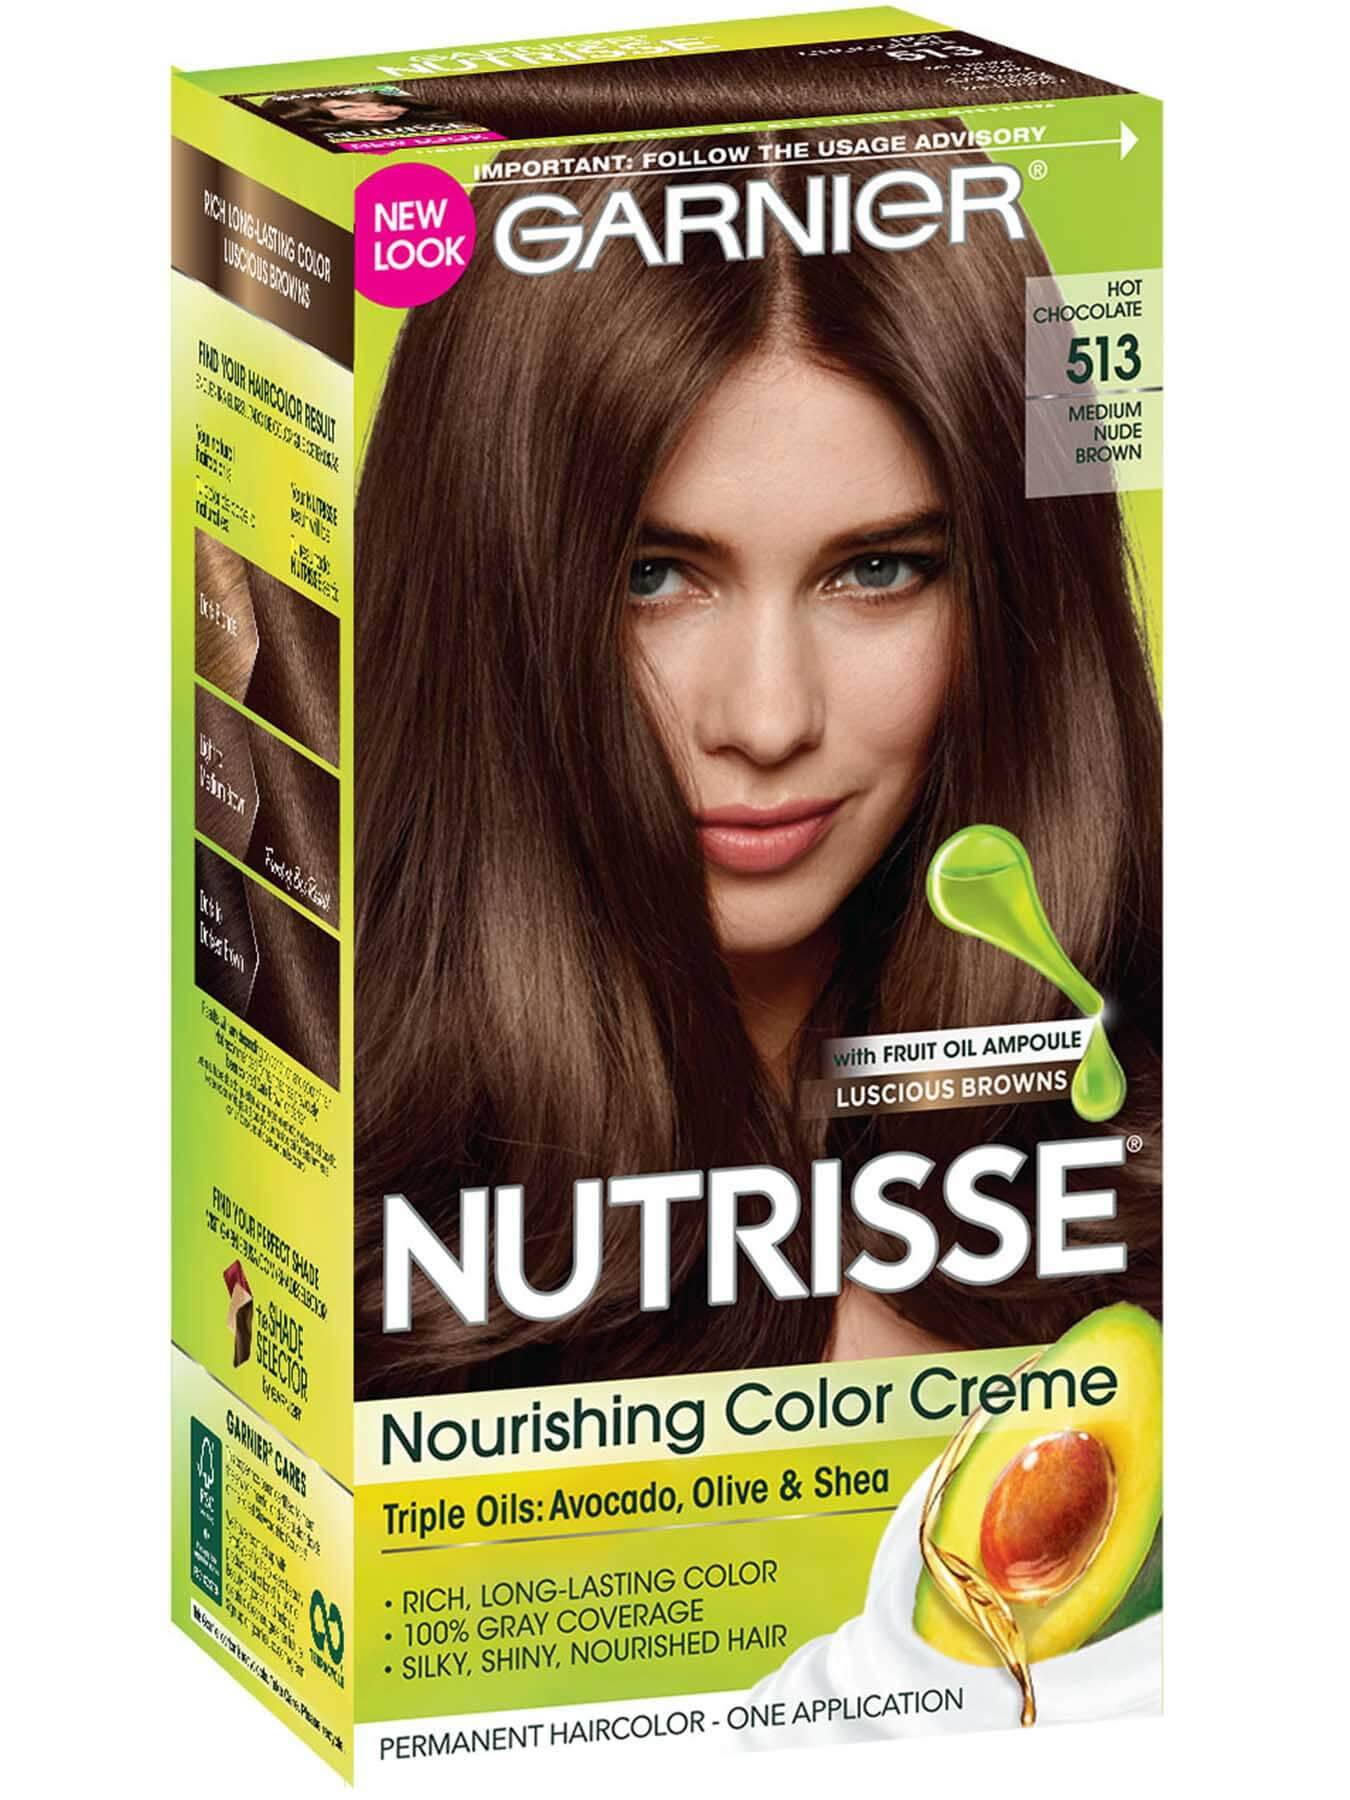 Front view of Nourishing Color Creme 513 - Medium Nude Brown.